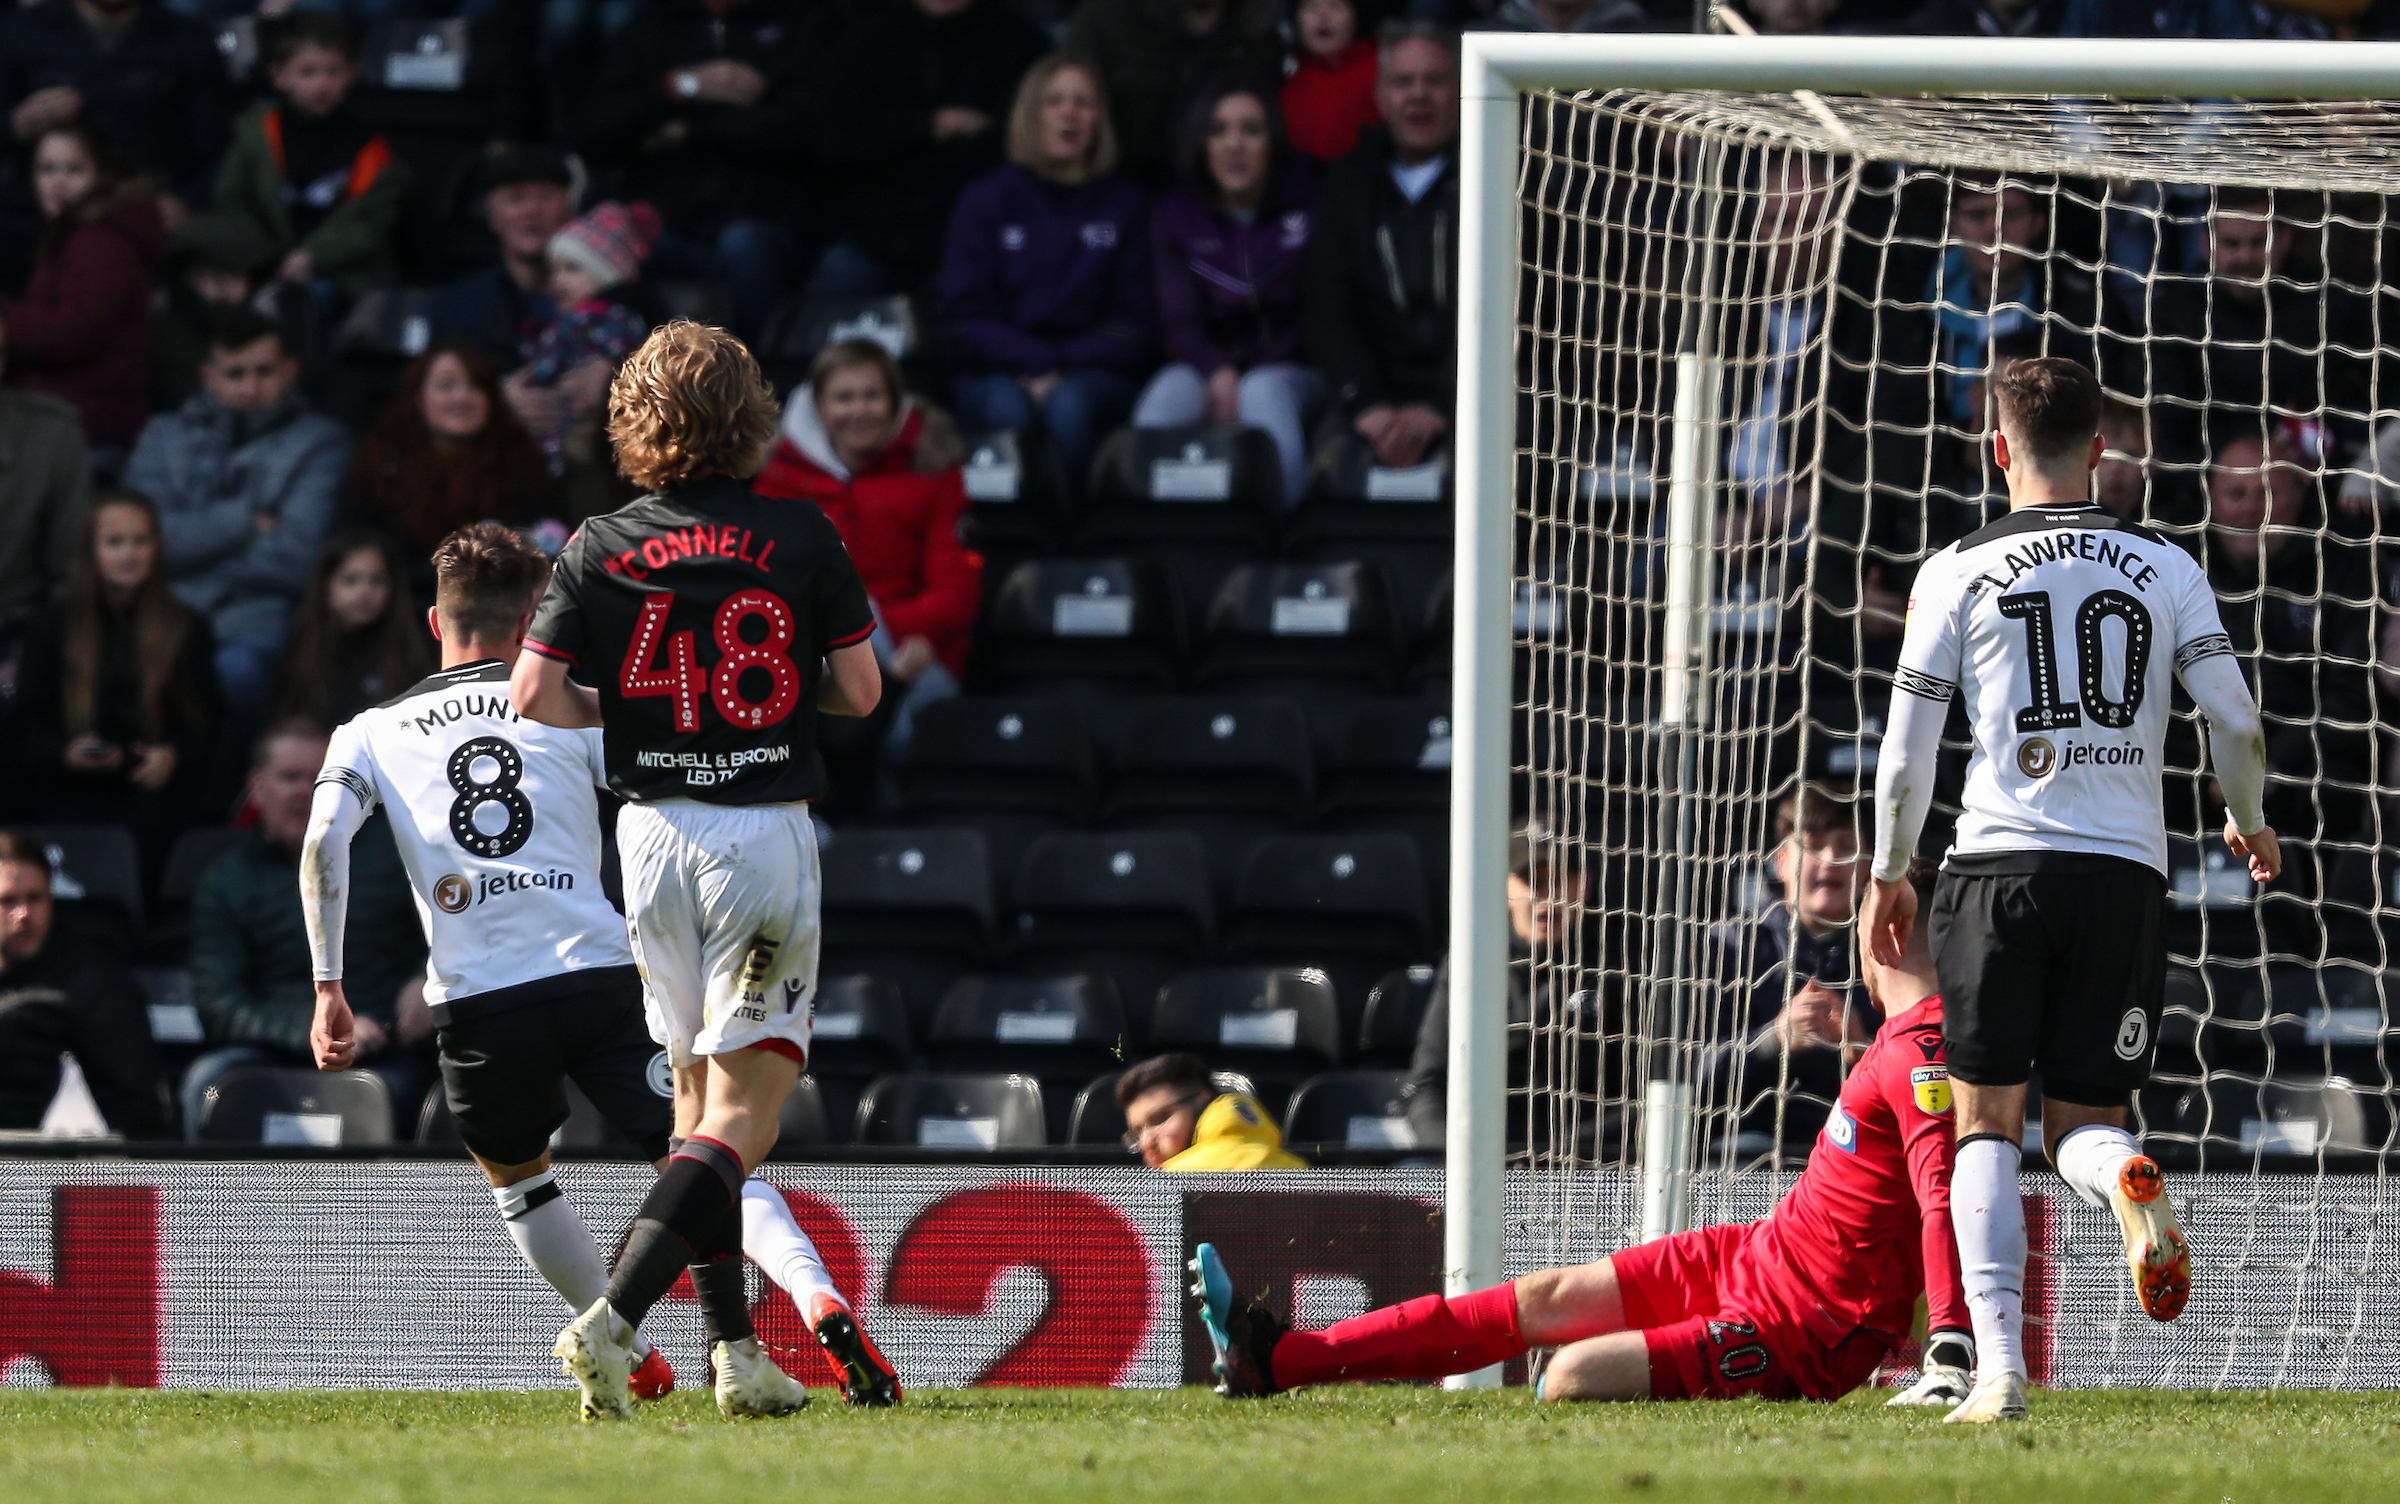 Mason Mount scores for Derby County in a 4-0 victory against Wanderers